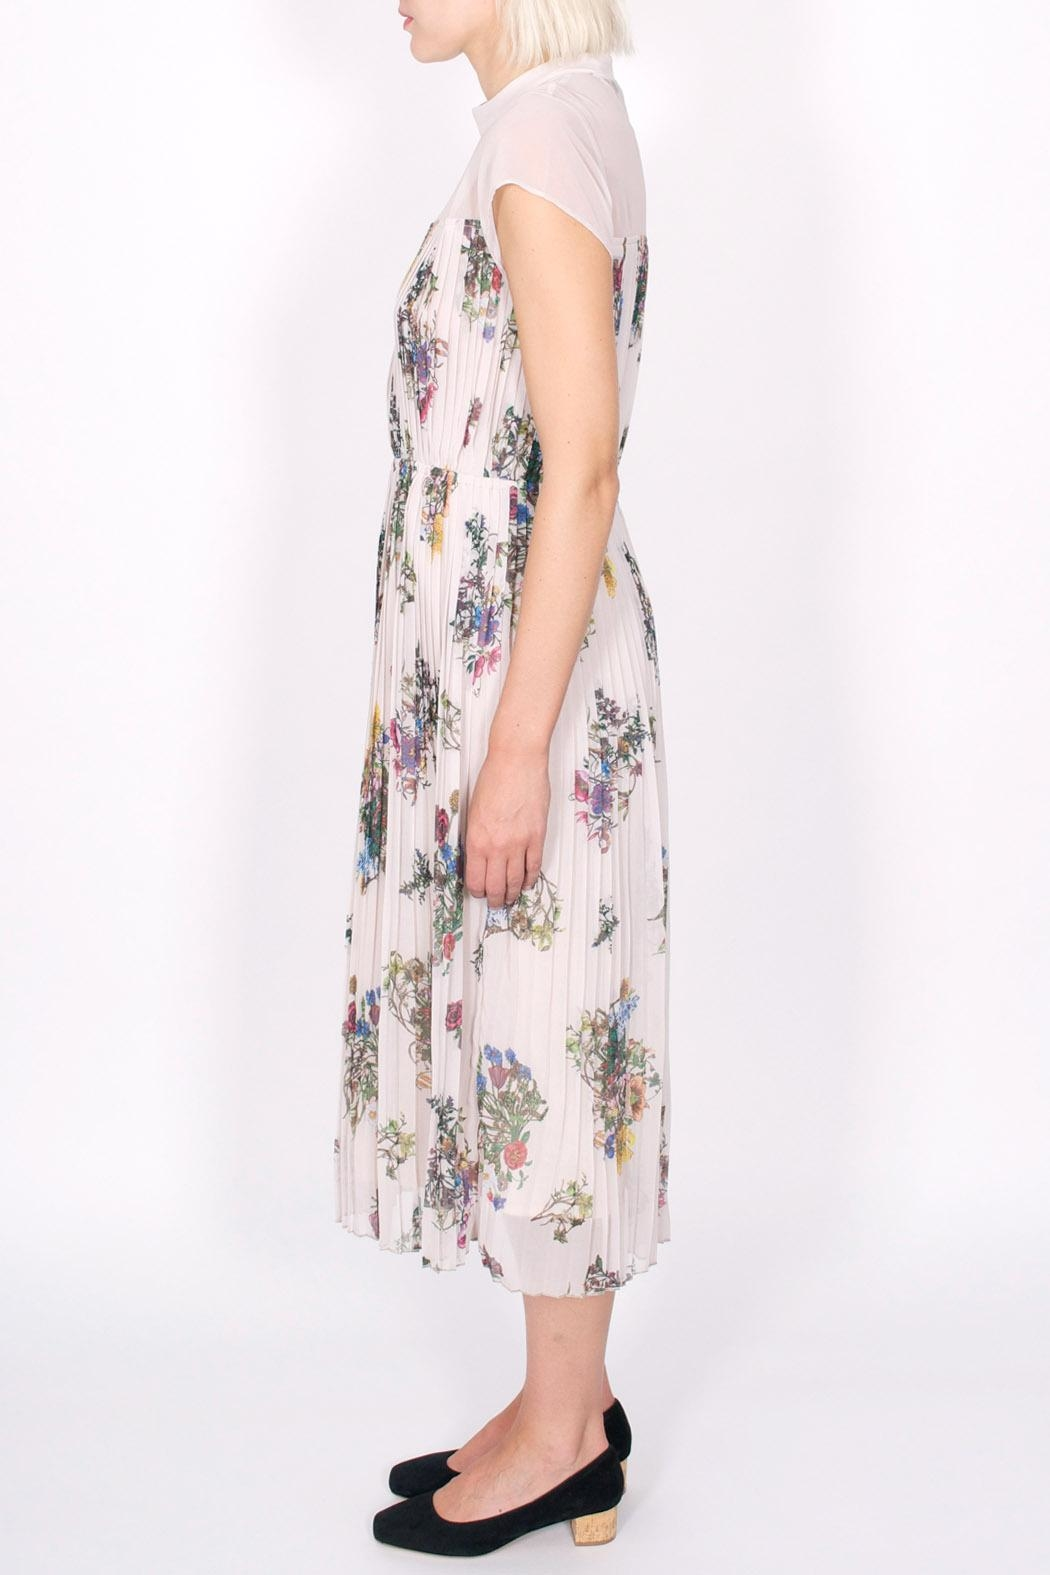 Storm & Marie Palm Floral Dress - Front Full Image